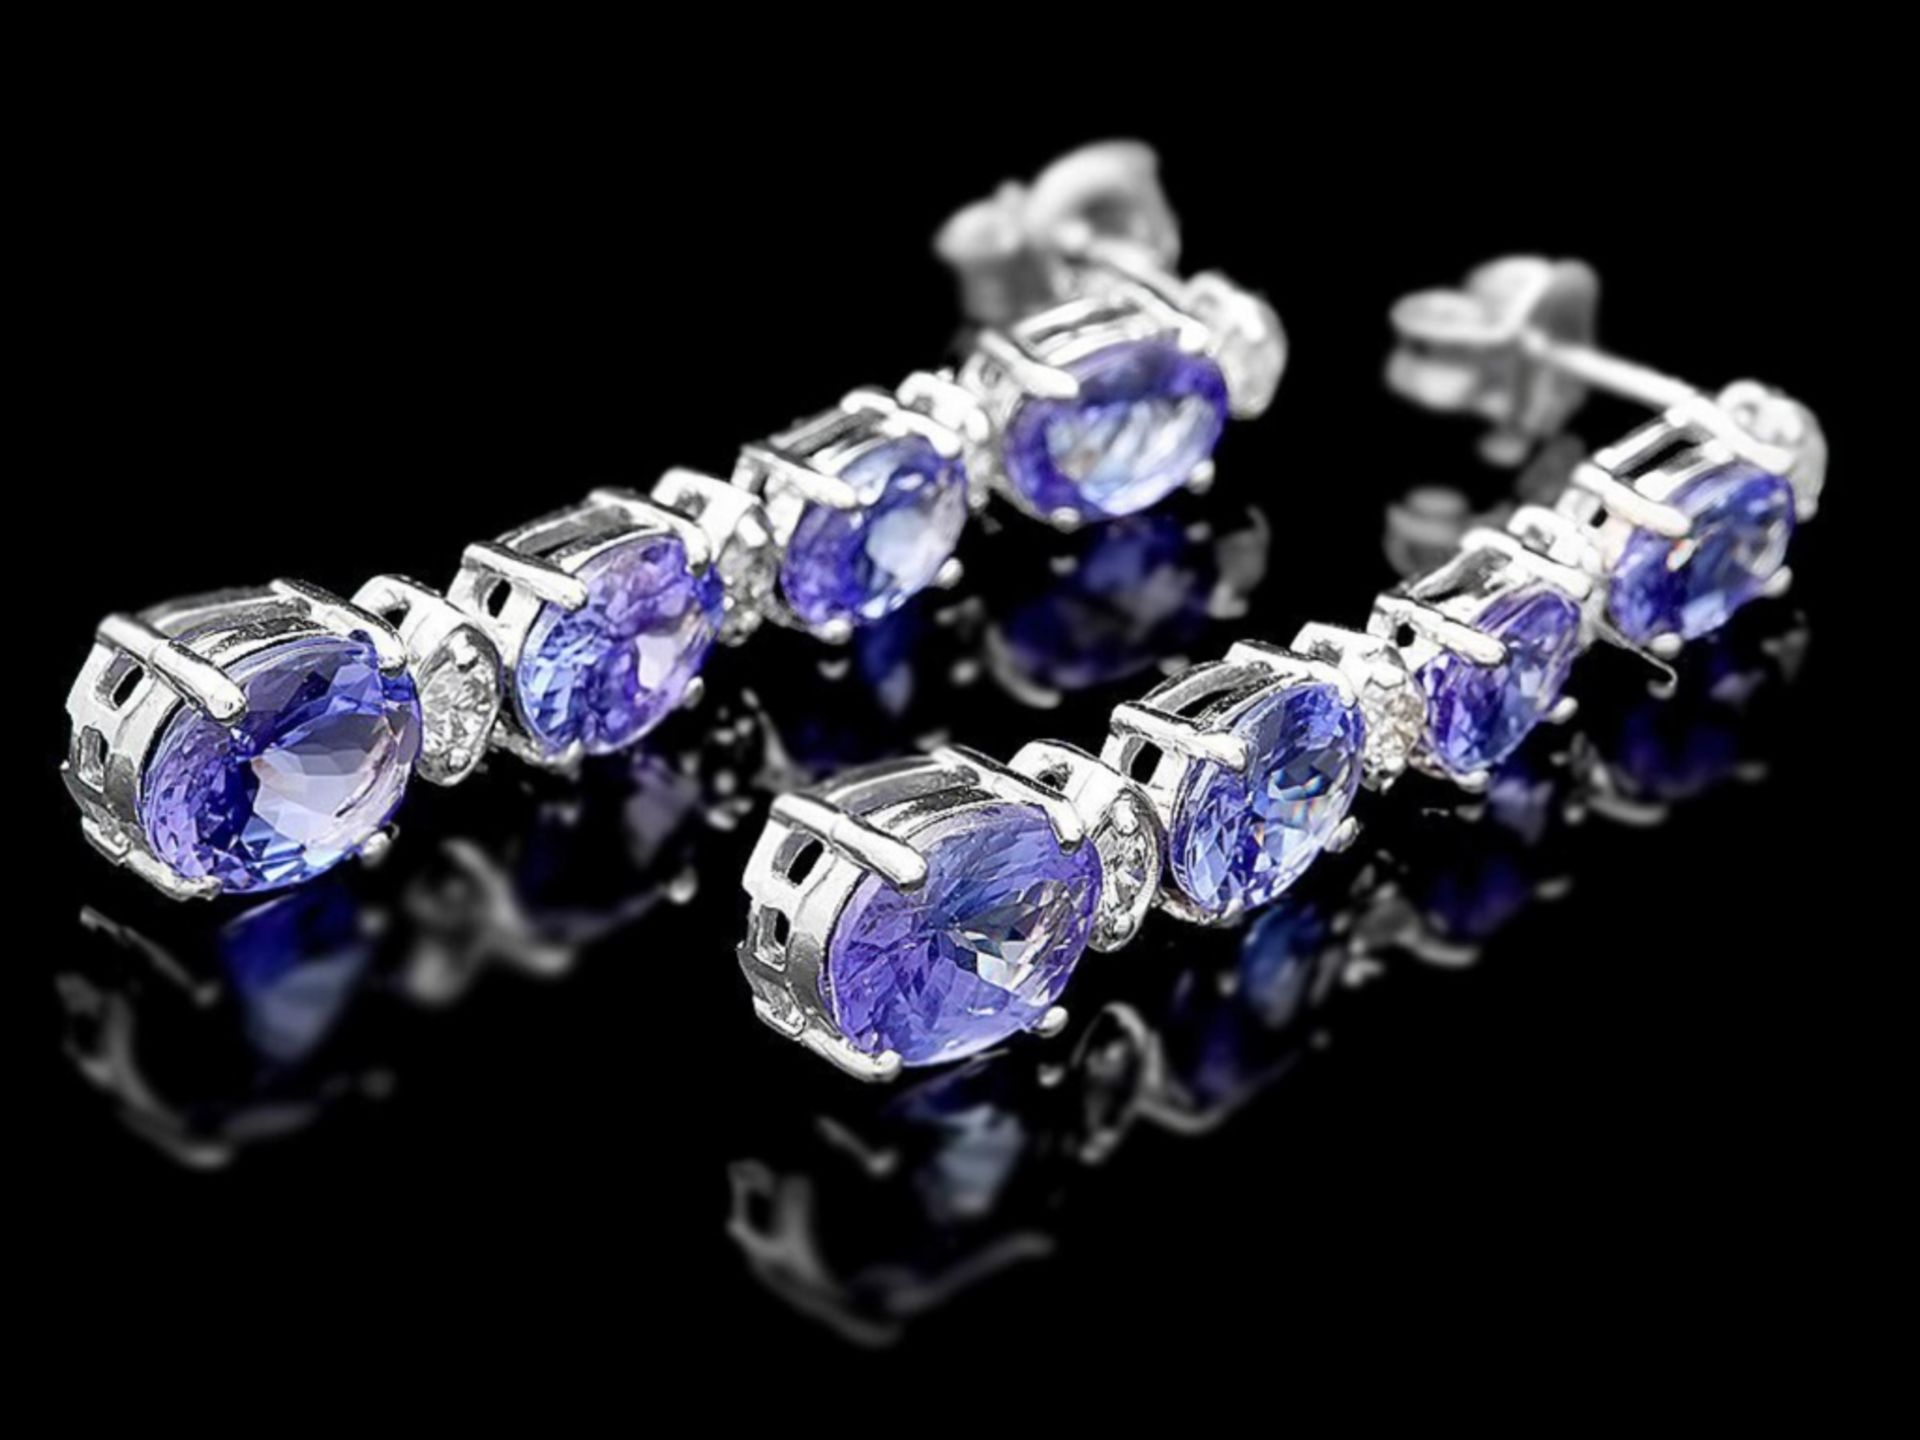 `14k Gold 7.00ct Tanzanite & 0.50ct Diamond Earrin - Image 2 of 4